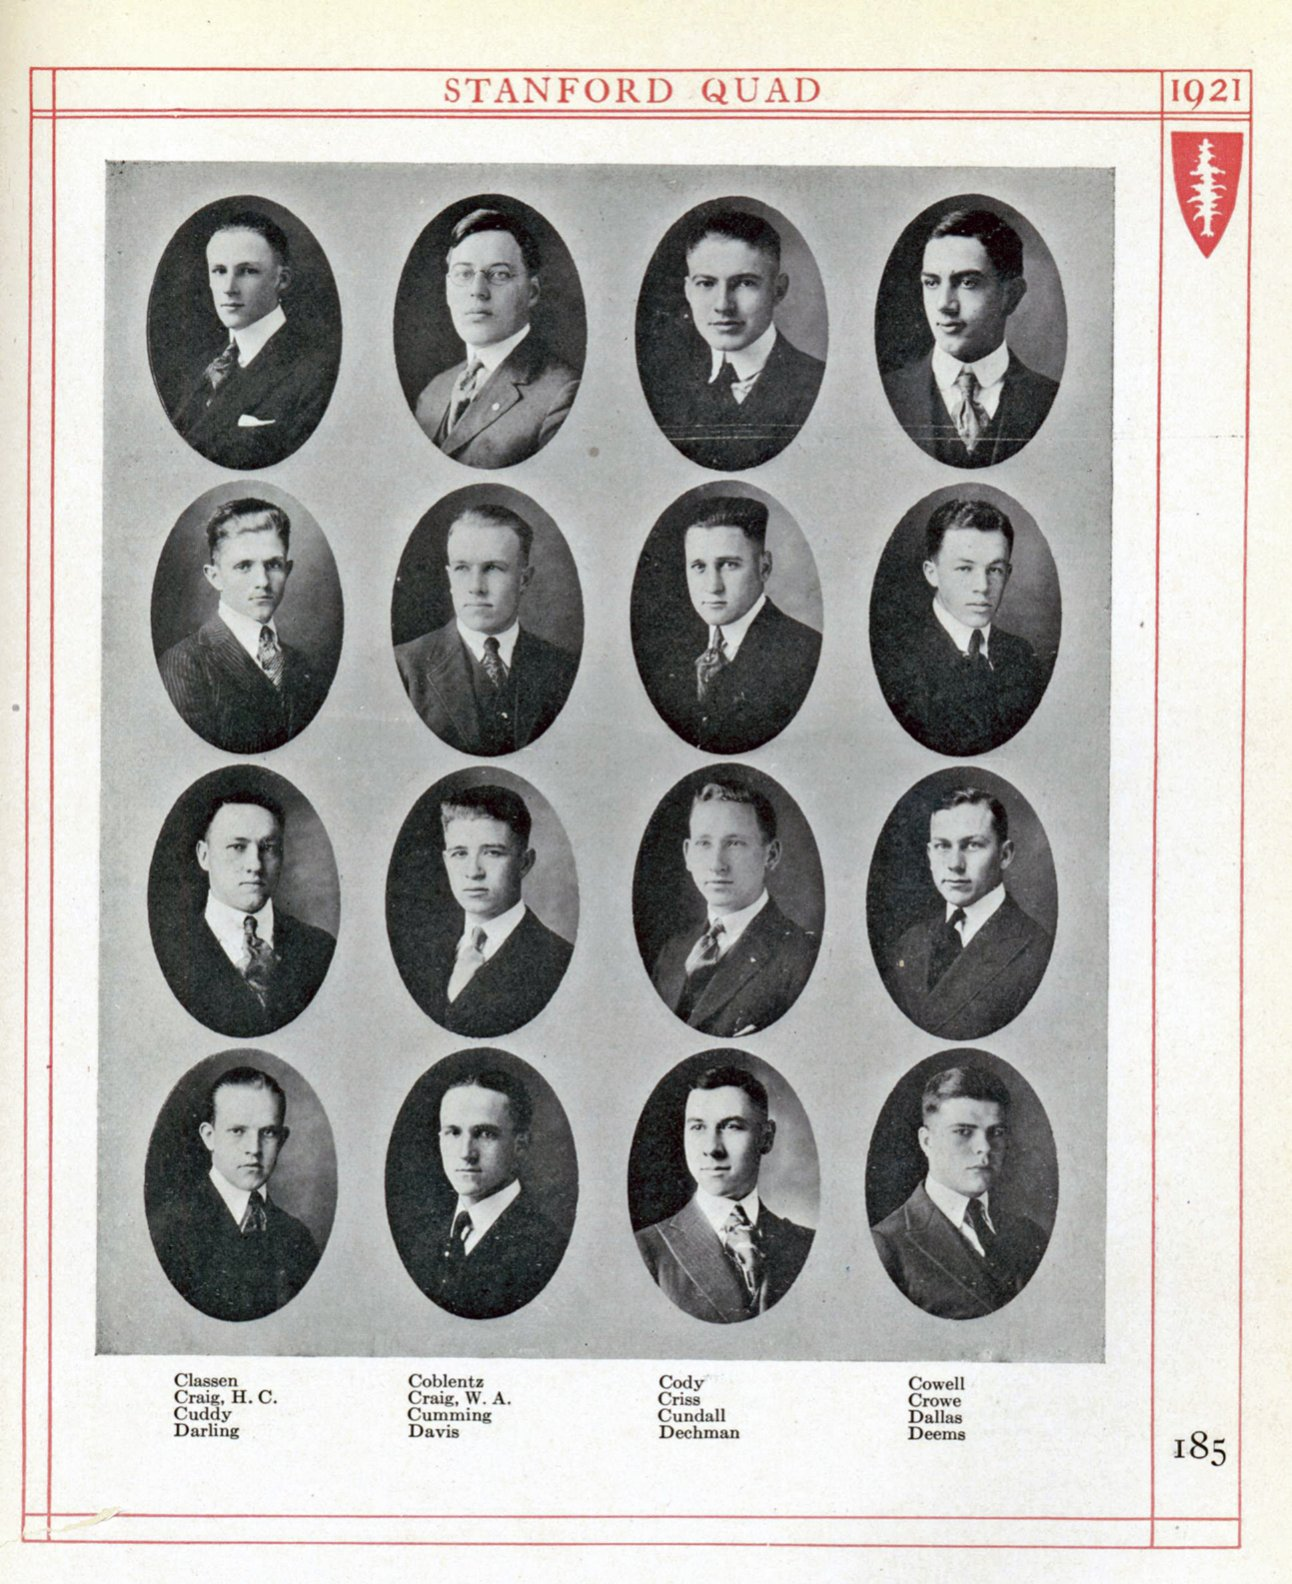 Click image for larger version  Name:Stanford Quad 1921 - Wally's Graduation Picture.jpg Views:117 Size:336.9 KB ID:65768